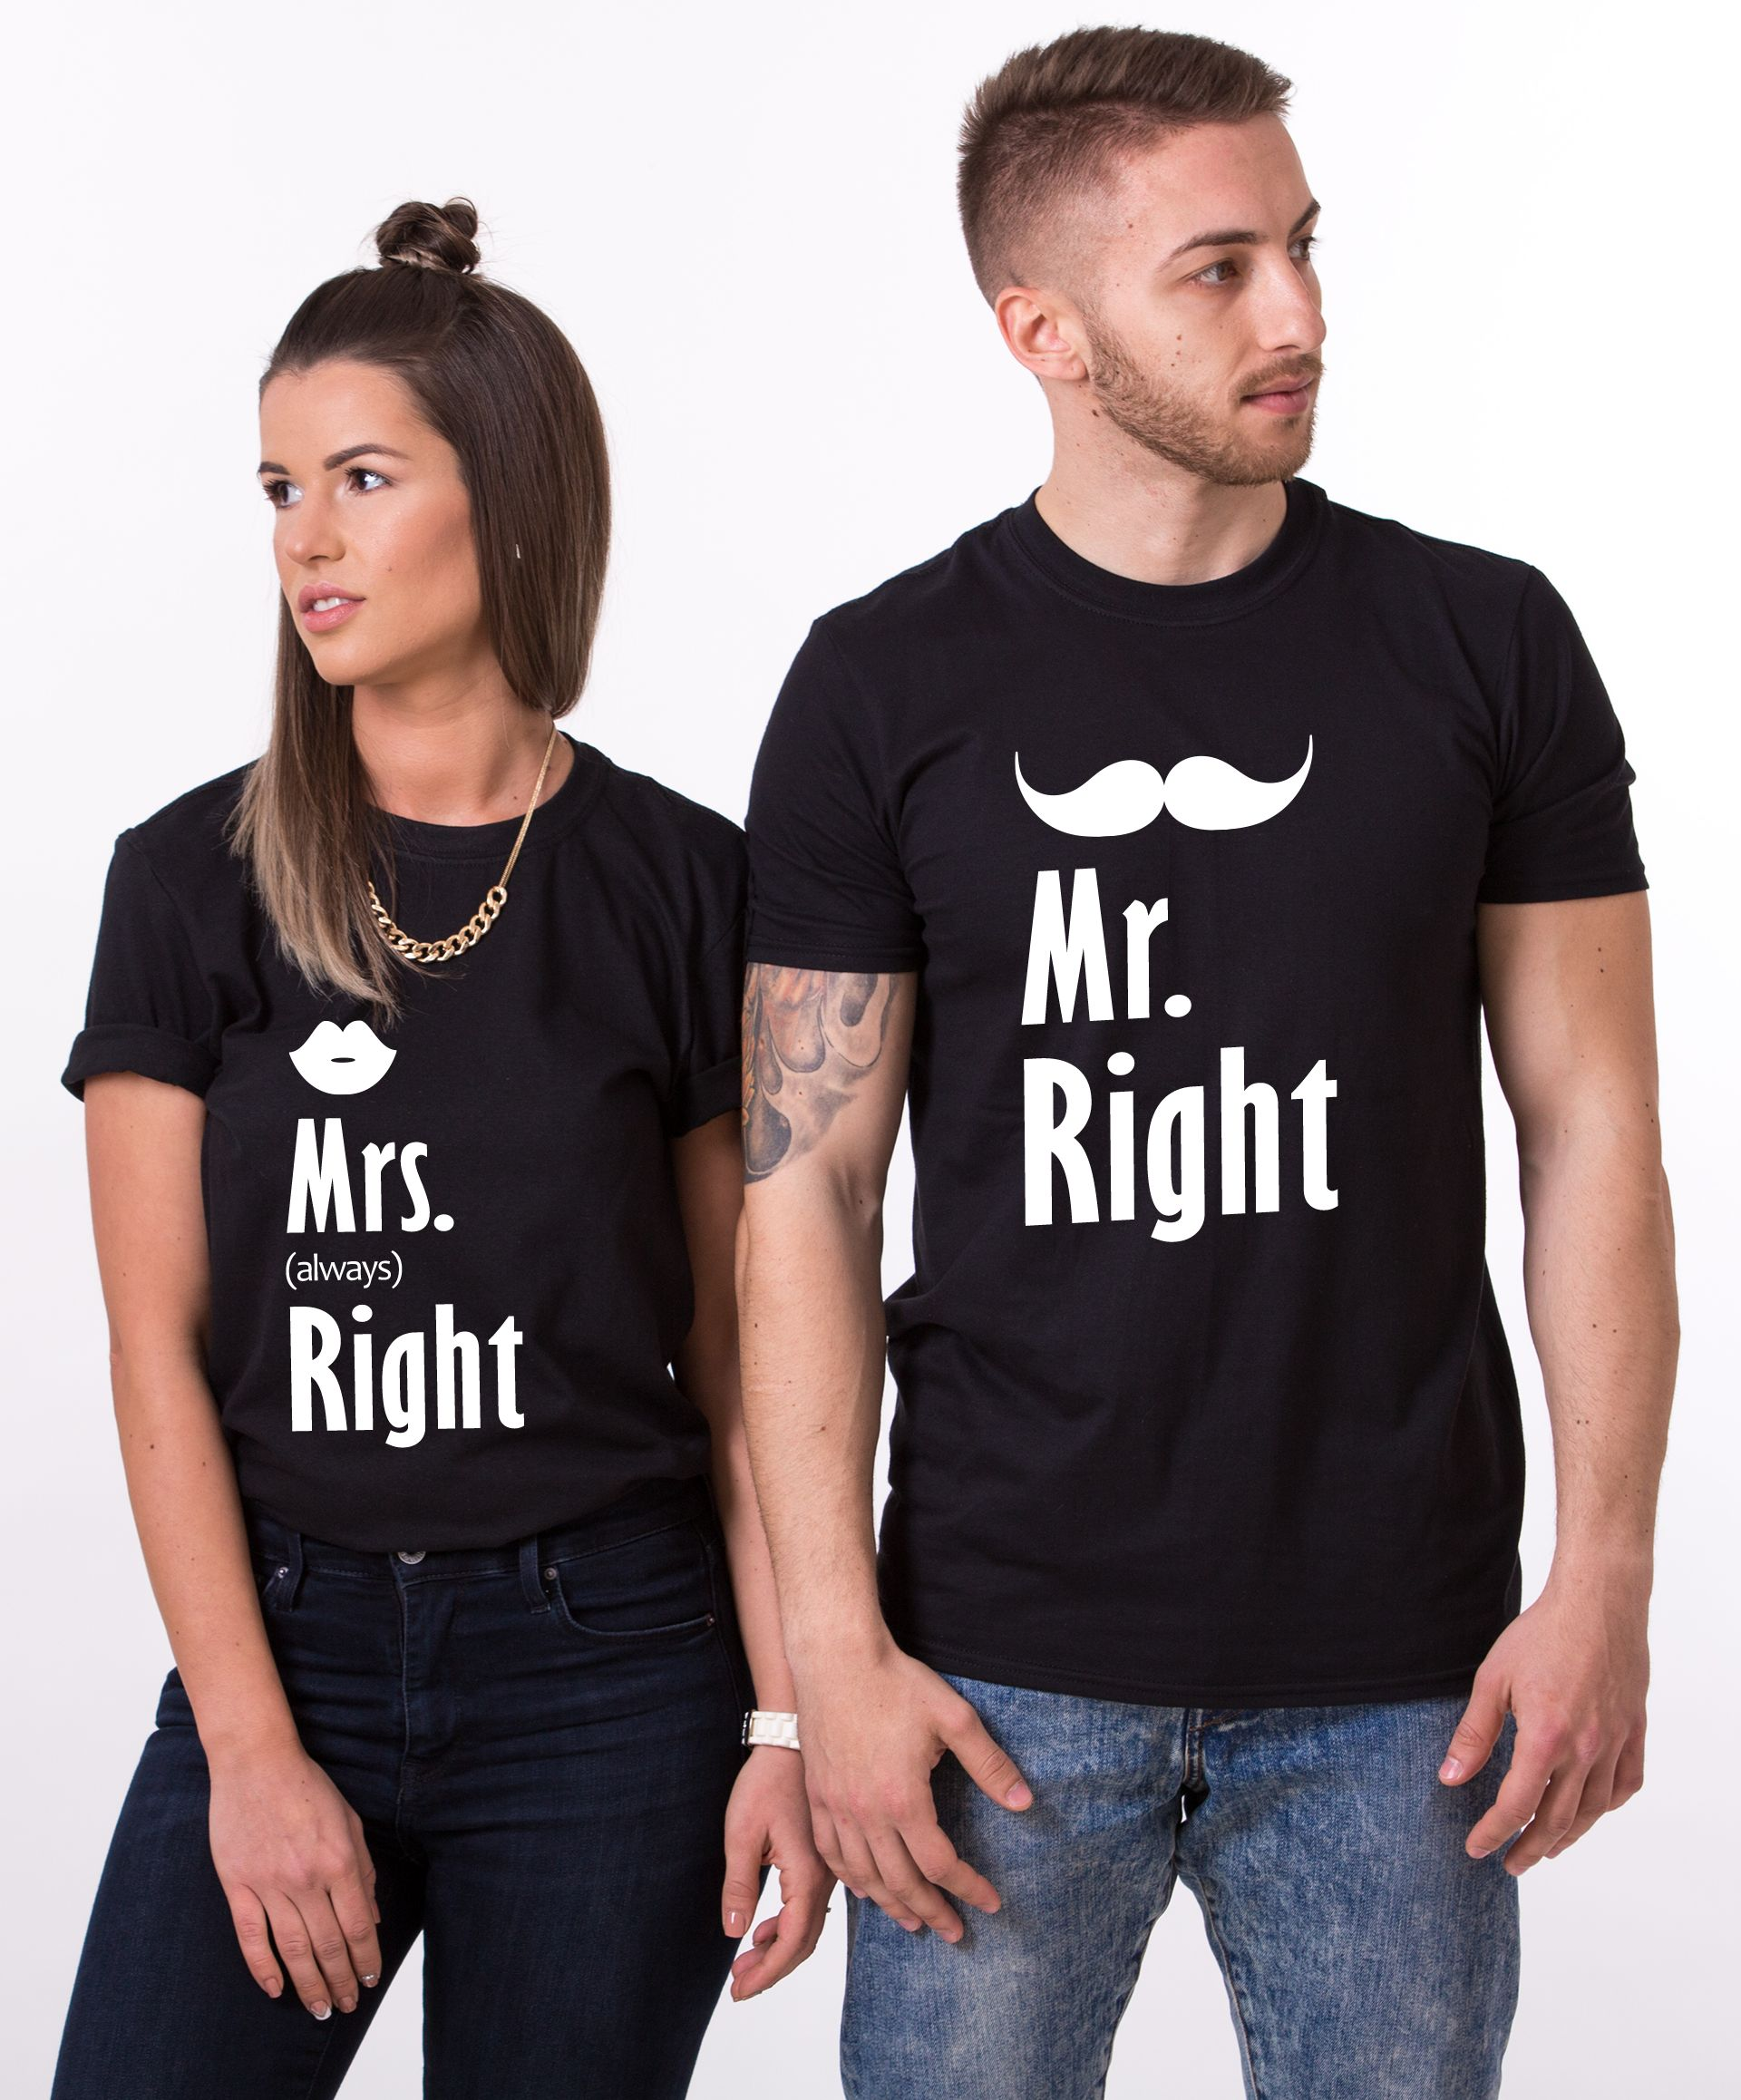 Mr Right Mrs Always Right Bettwäsche Couples Set Mr Right Mrs Always Right Matching Shirts